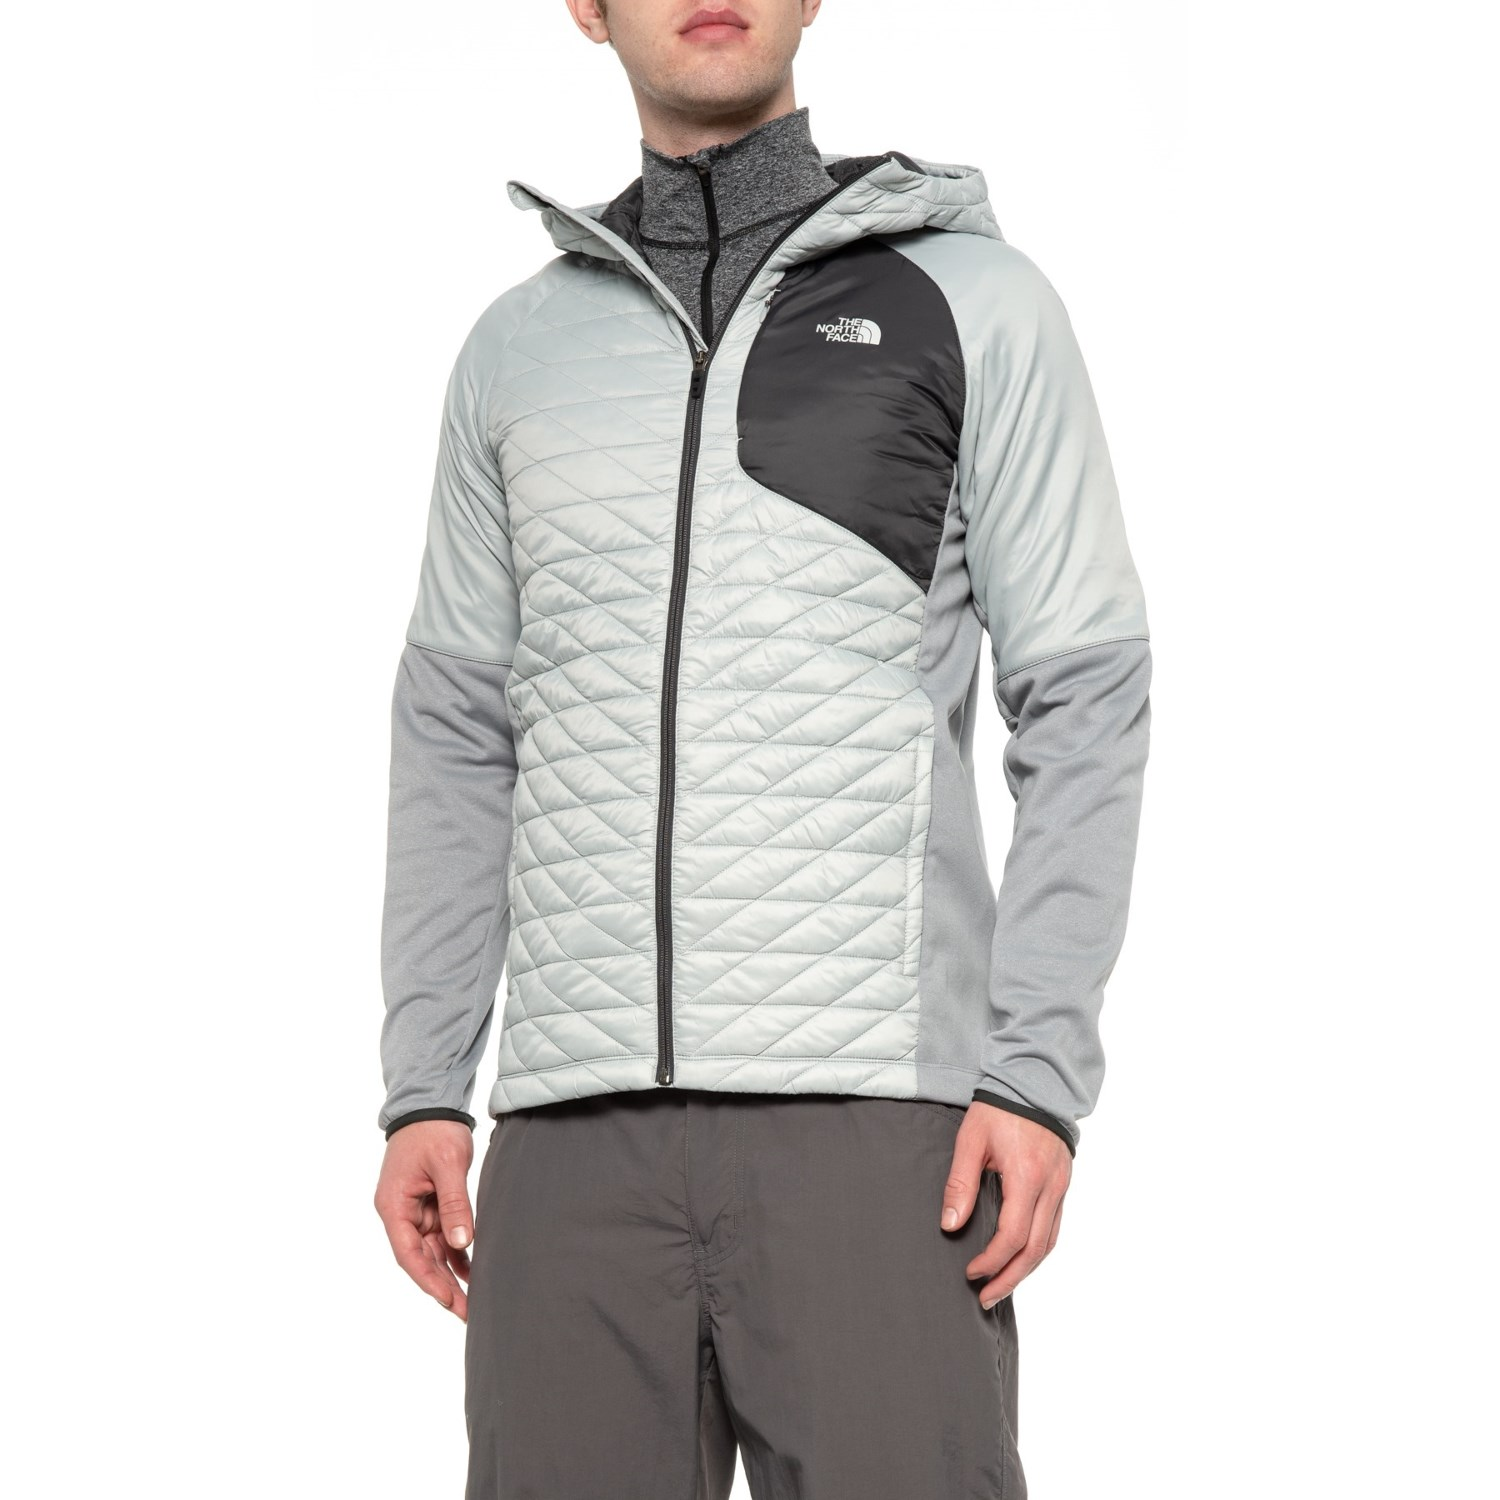 471c7f9d1 The North Face Kilowatt ThermoBall® Hooded Jacket (For Men)